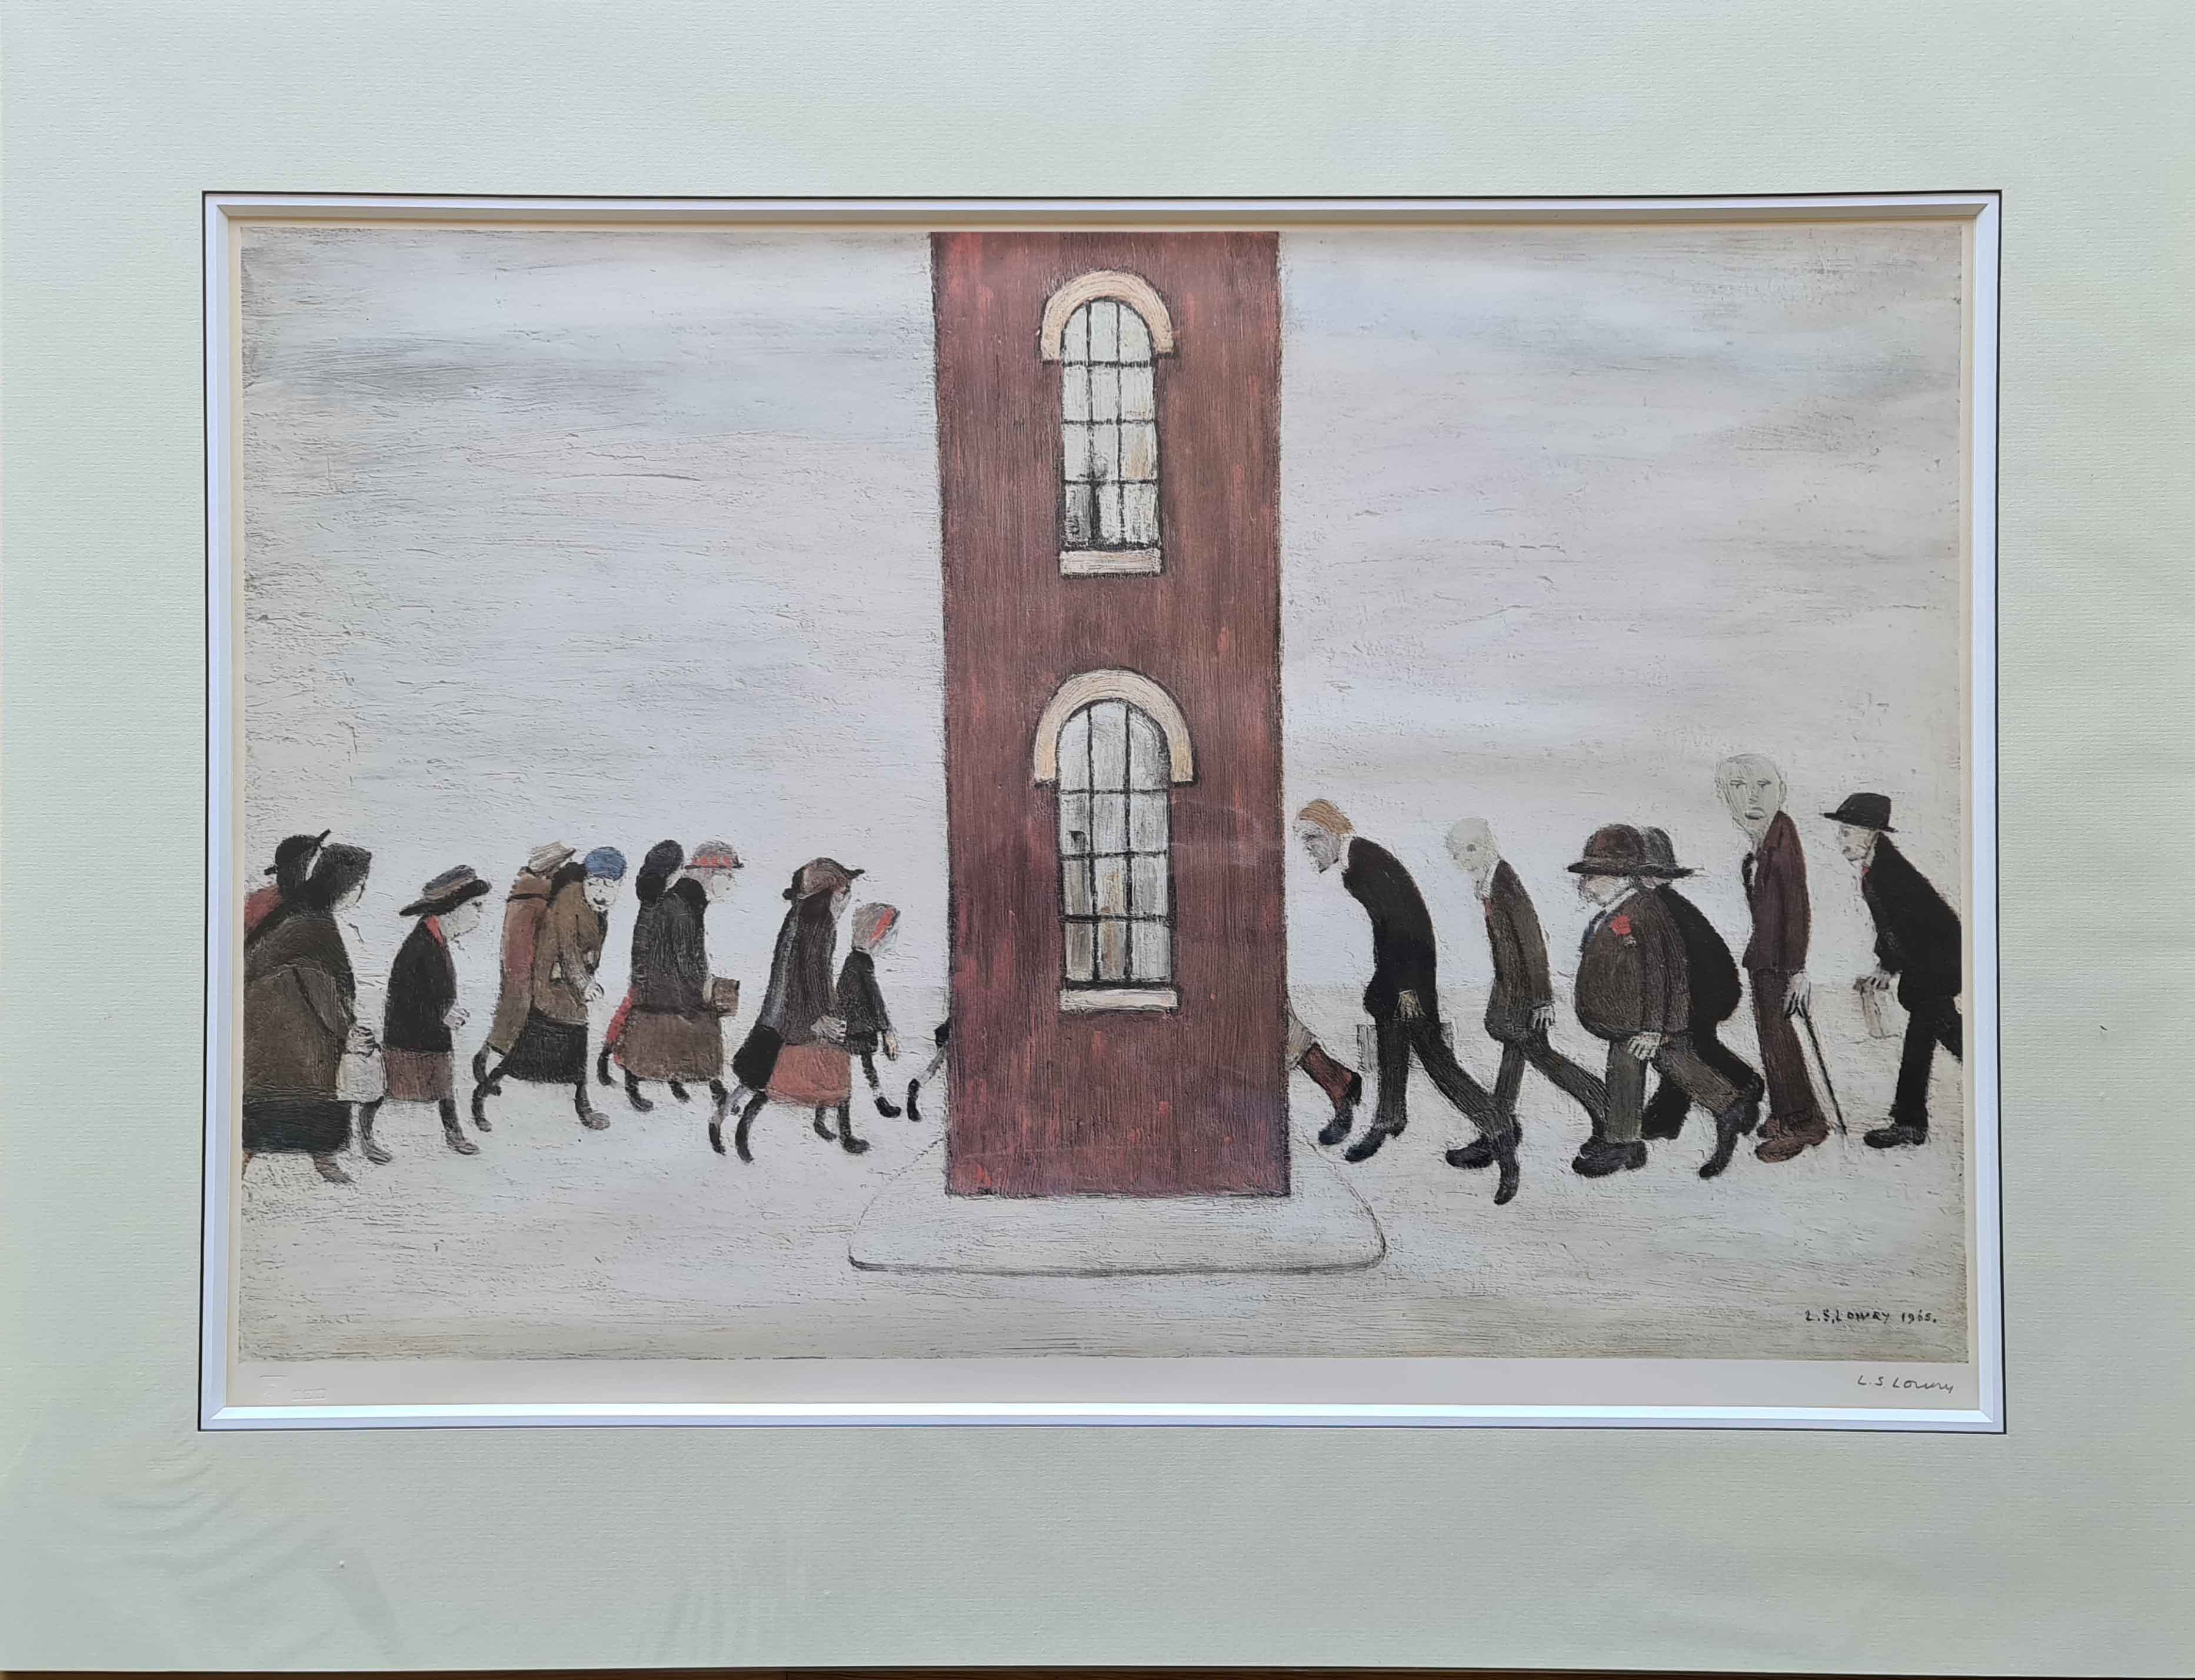 lowry, meeting point, signed print lslowry